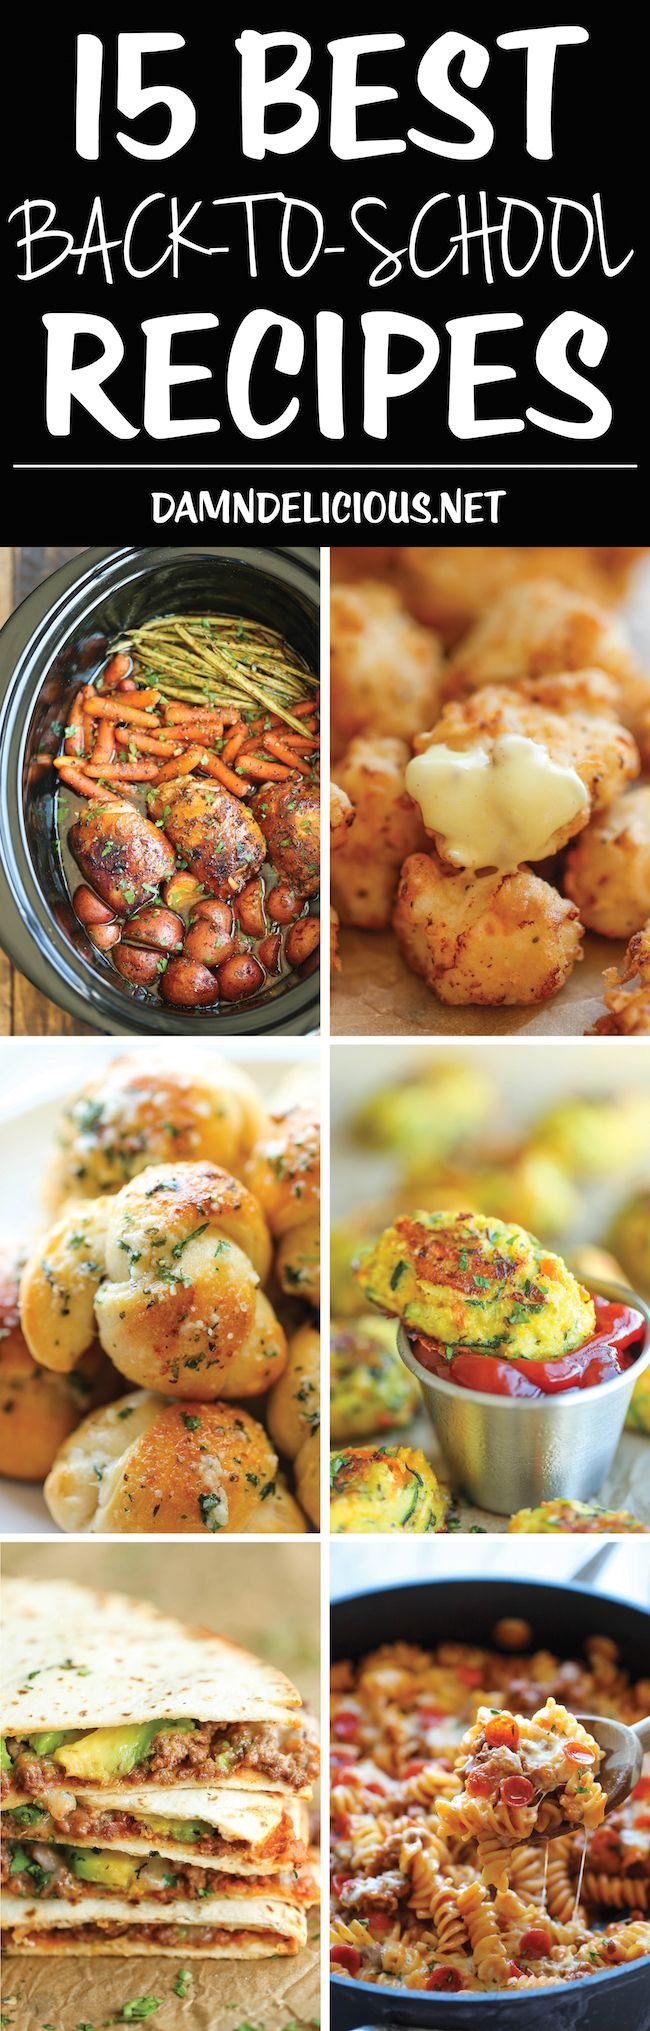 15 Best Back-To-School Recipes - Easy peasy, no-fuss breakfast, lunch, snack and fast dinner recipes to get your family through the week!